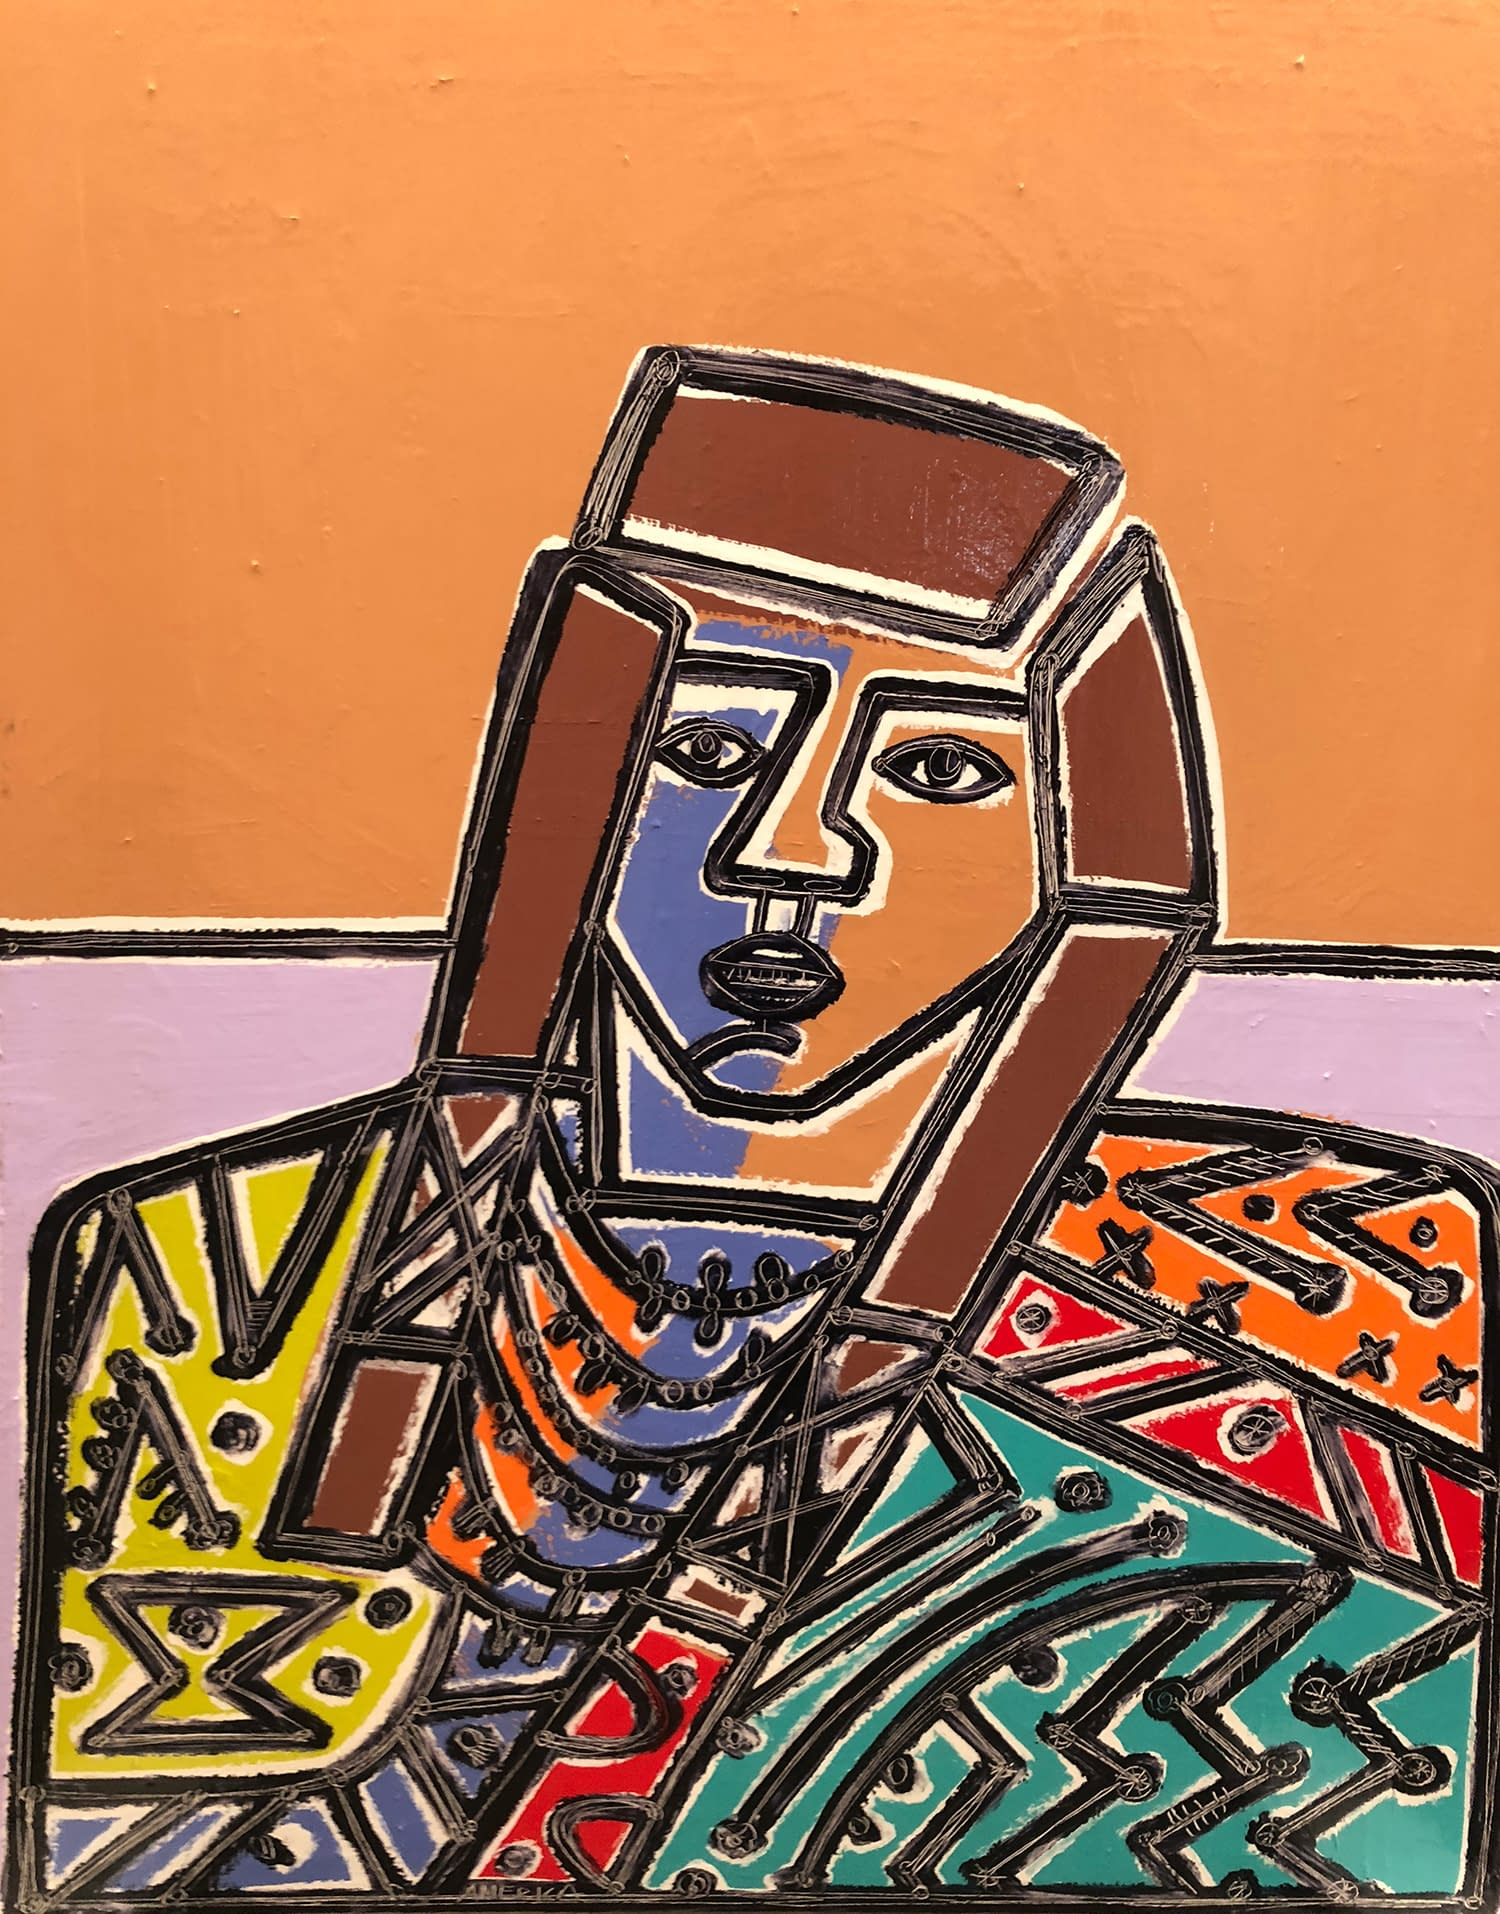 Man_with_Blanket_Oil_and_Acrylic_on_Canvas_50_x_40_in_sm